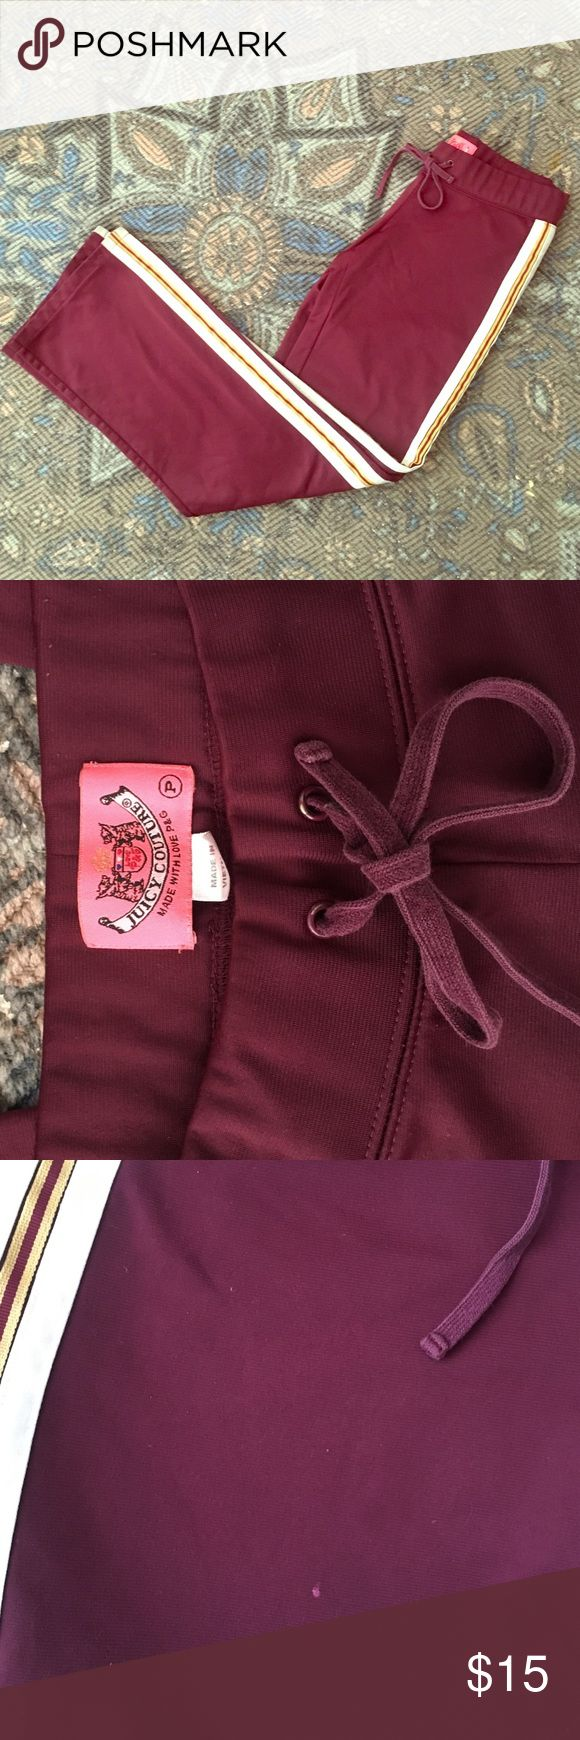 Juicy Couture track pants Maroon juicy track sweats! Size petite. Light wear and one small spot as pictured.  Clean with no markings on sides or butt. Besides small spot that isn't noticeable, in great condition and made very well. Great for jogging or hitting the gym. Always get tons of compliments on these but unfortunately no longer fit. Juicy Couture Pants Track Pants & Joggers